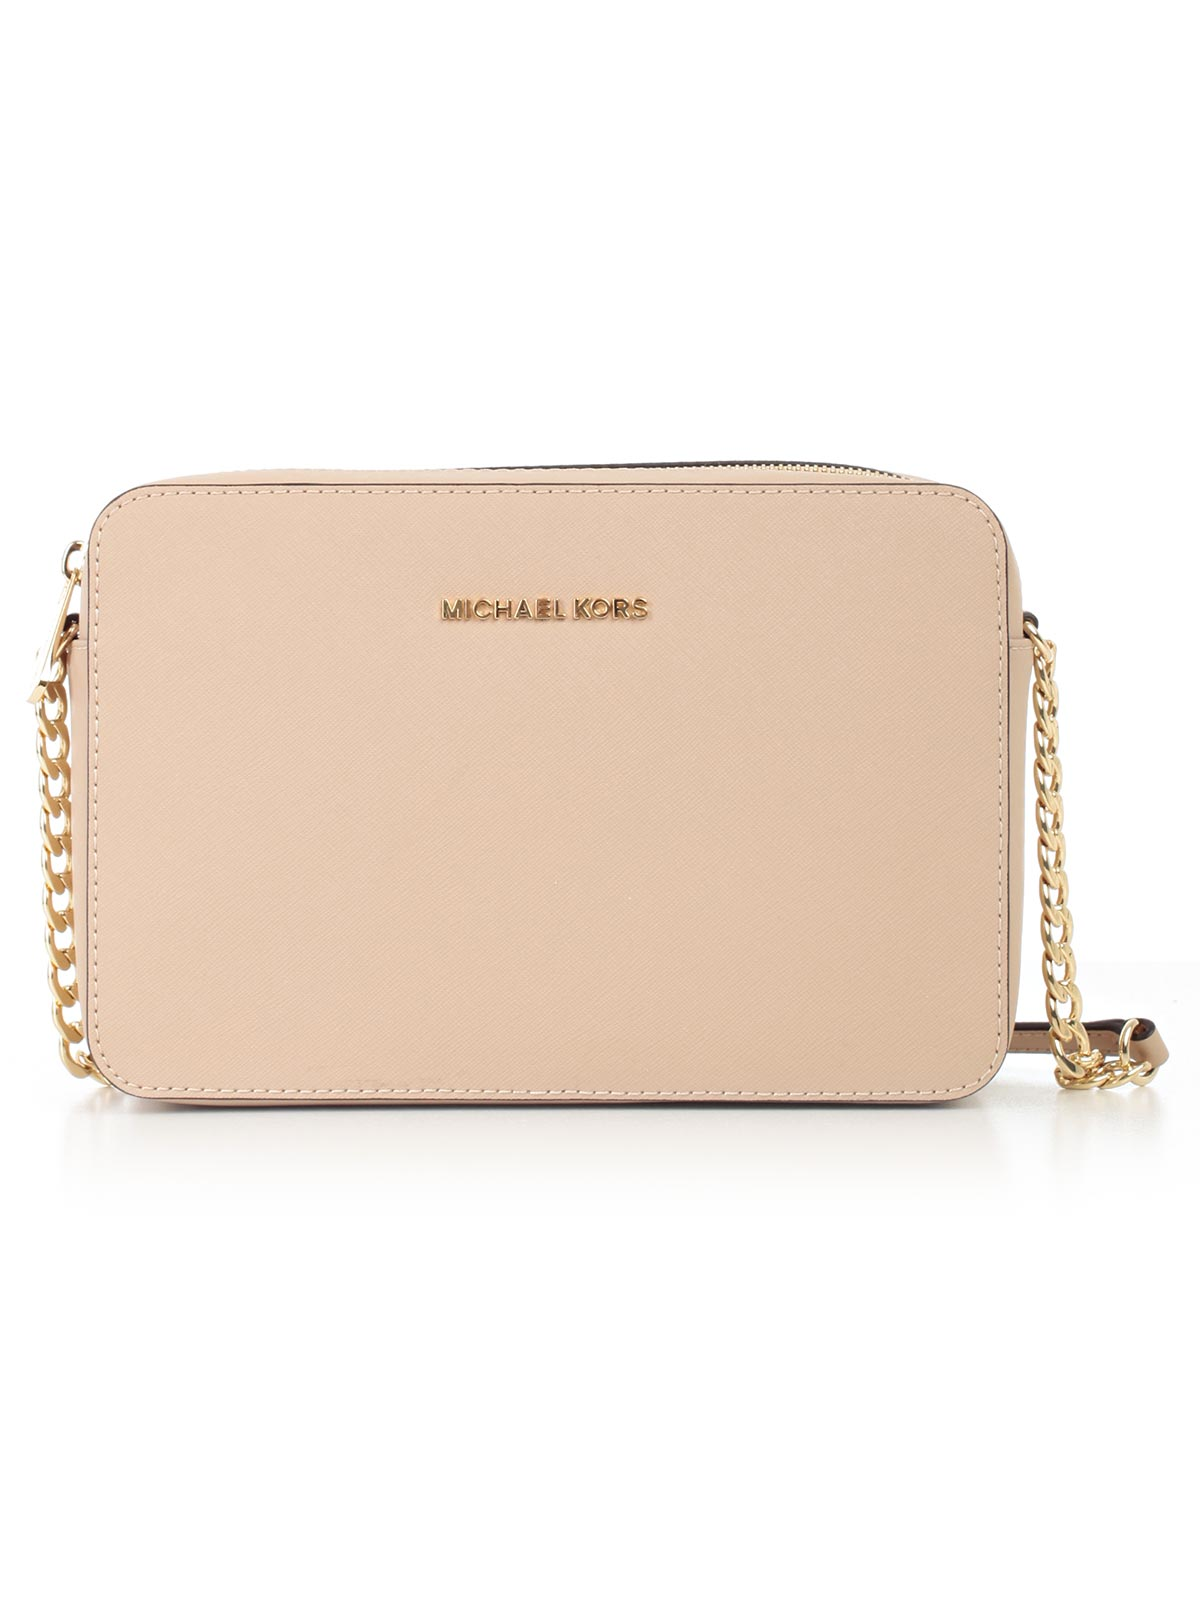 Picture of MICHAEL MICHAEL KORS BAG JET SET TRAVEL LG EW CROSSBODY TRACOLLINA IN SAFFIANO